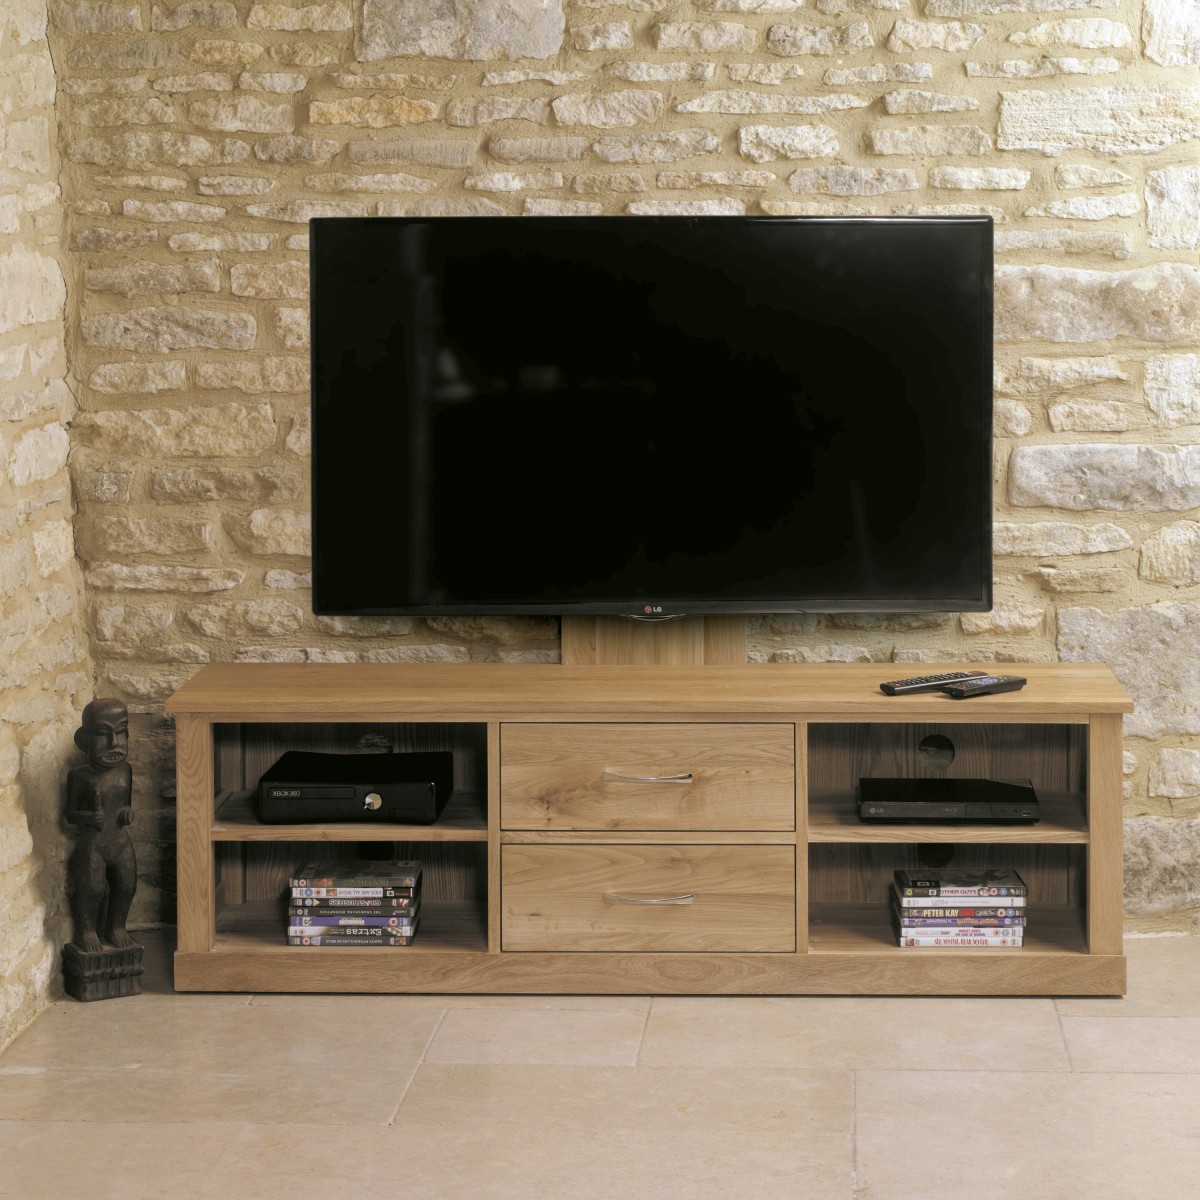 baumhaus mobel solid oak mounted widescreen baumhaus mobel solid oak mounted widescreen tv cabinet cor09e aston solid oak wall mirror